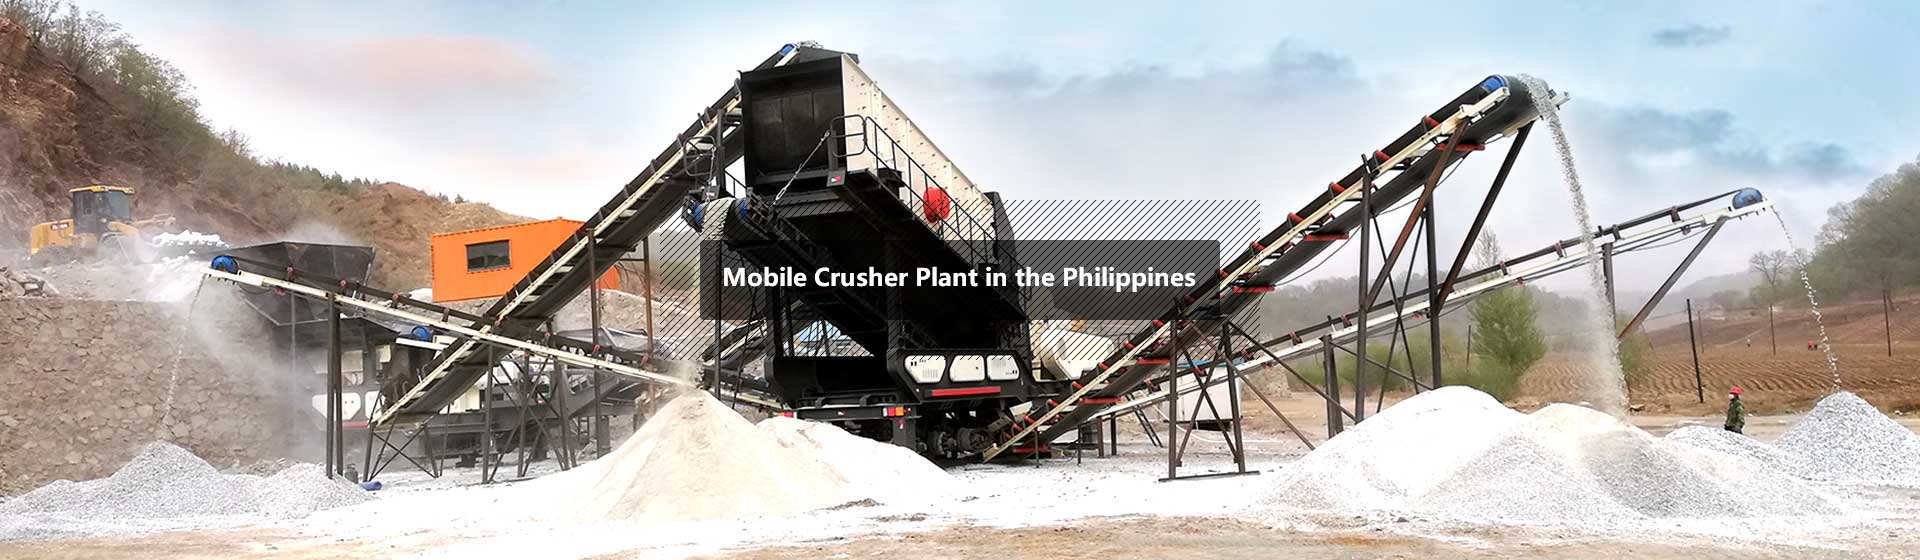 mobile-crusher